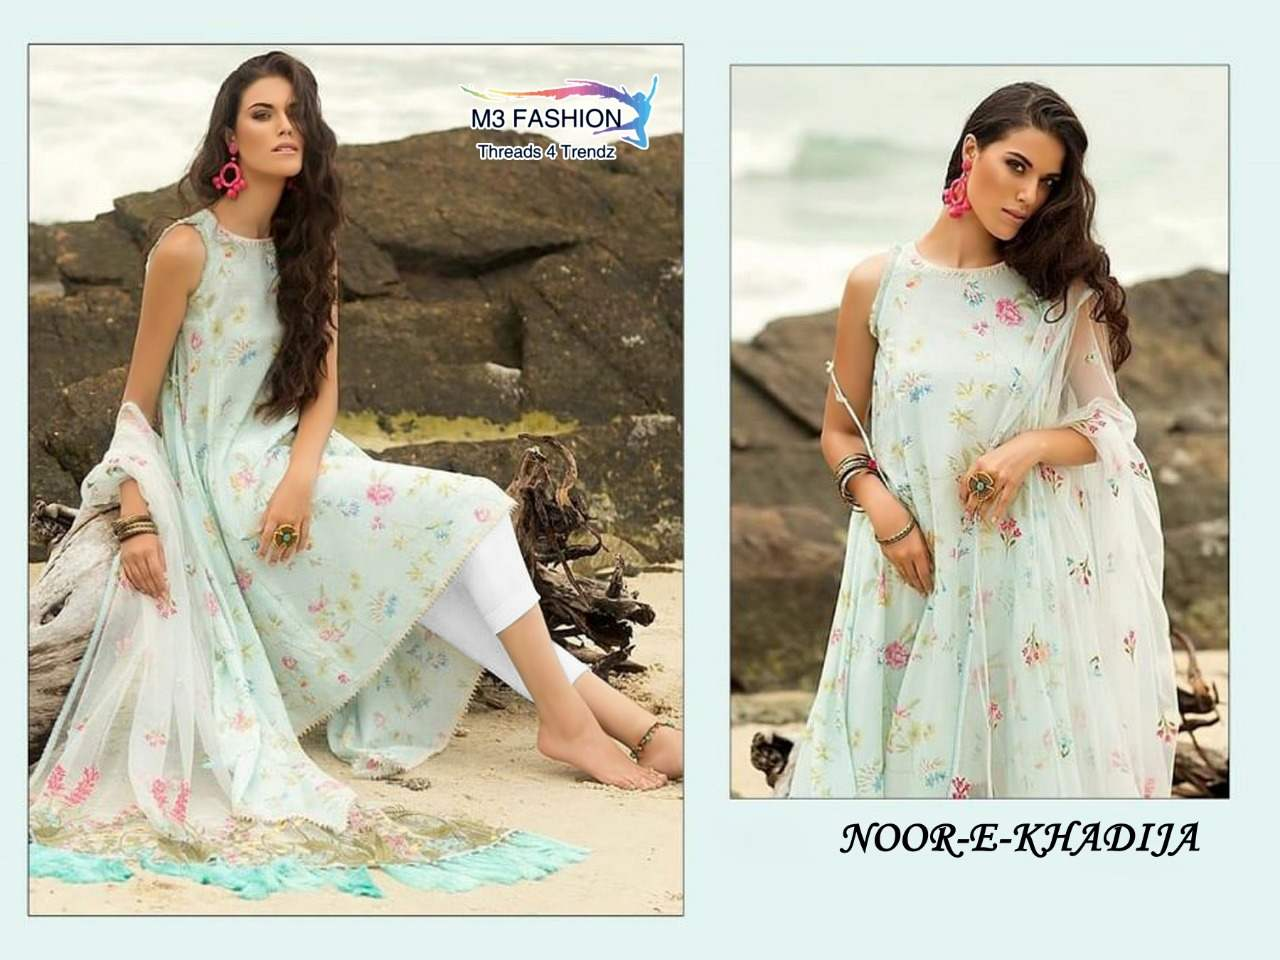 M3 Fashion Noor E Khadija collection 2